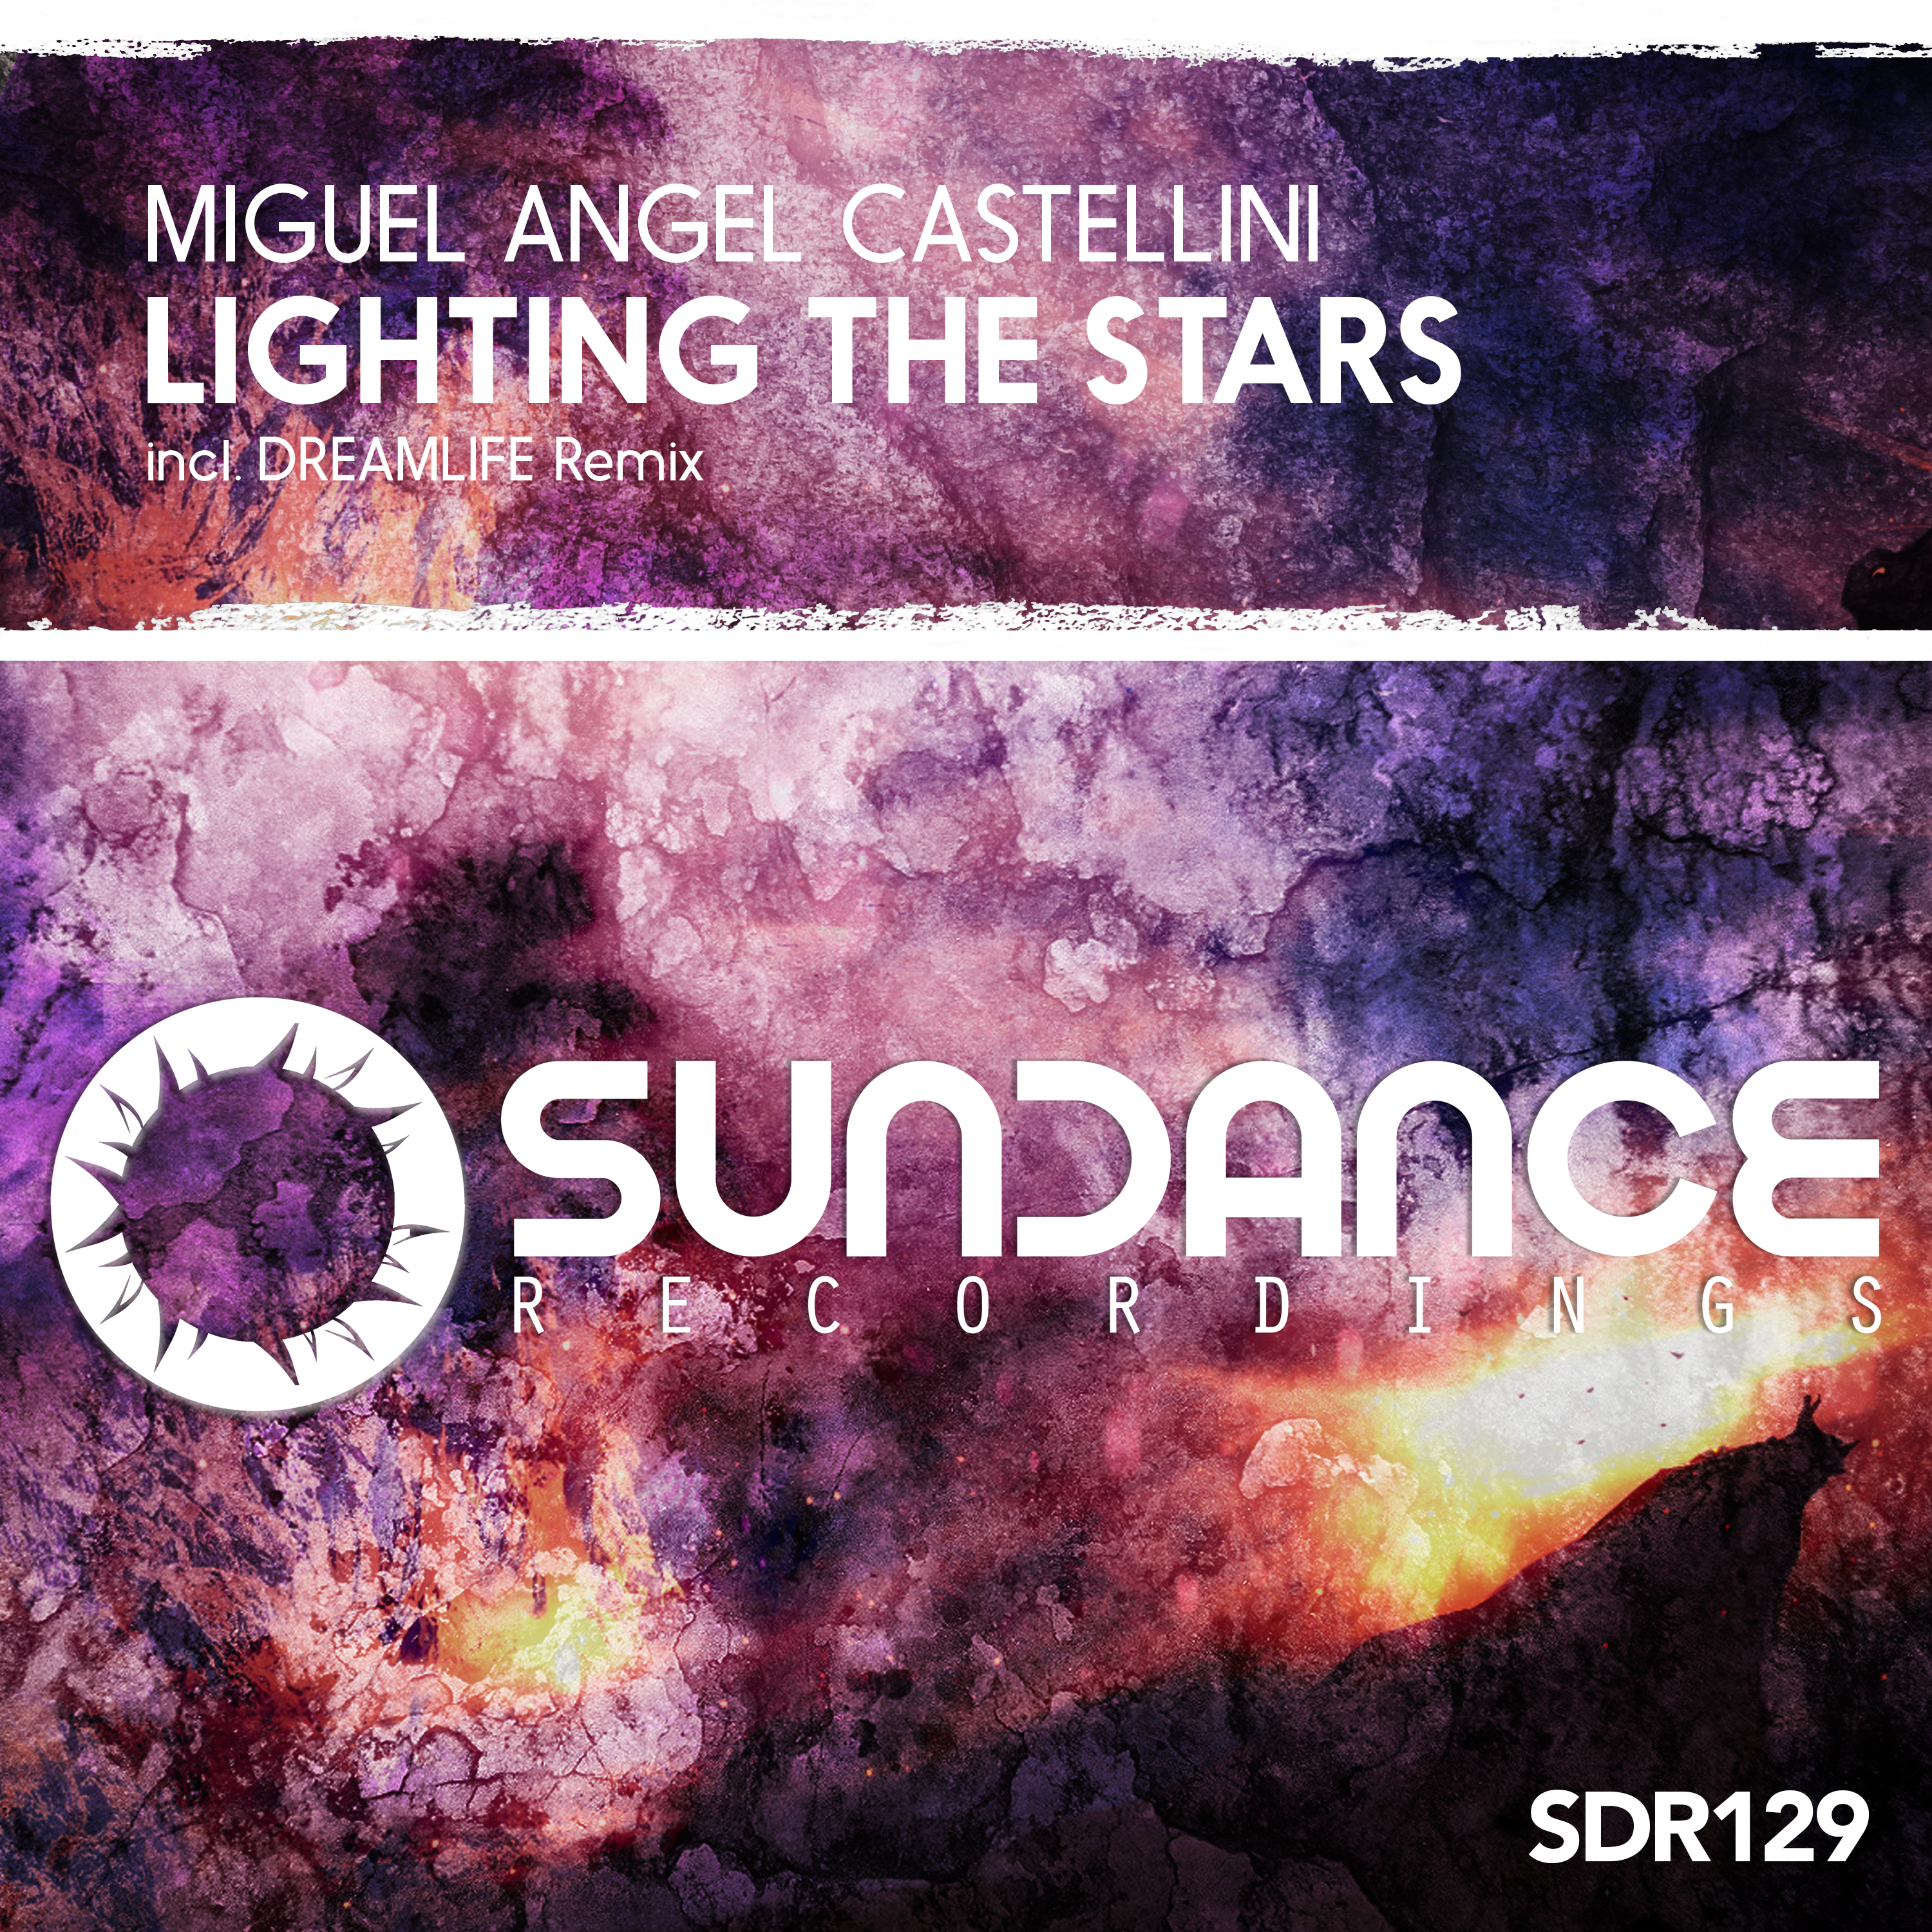 Miguel Angel Castellini – Lighting The Stars (DreamLife Remix)